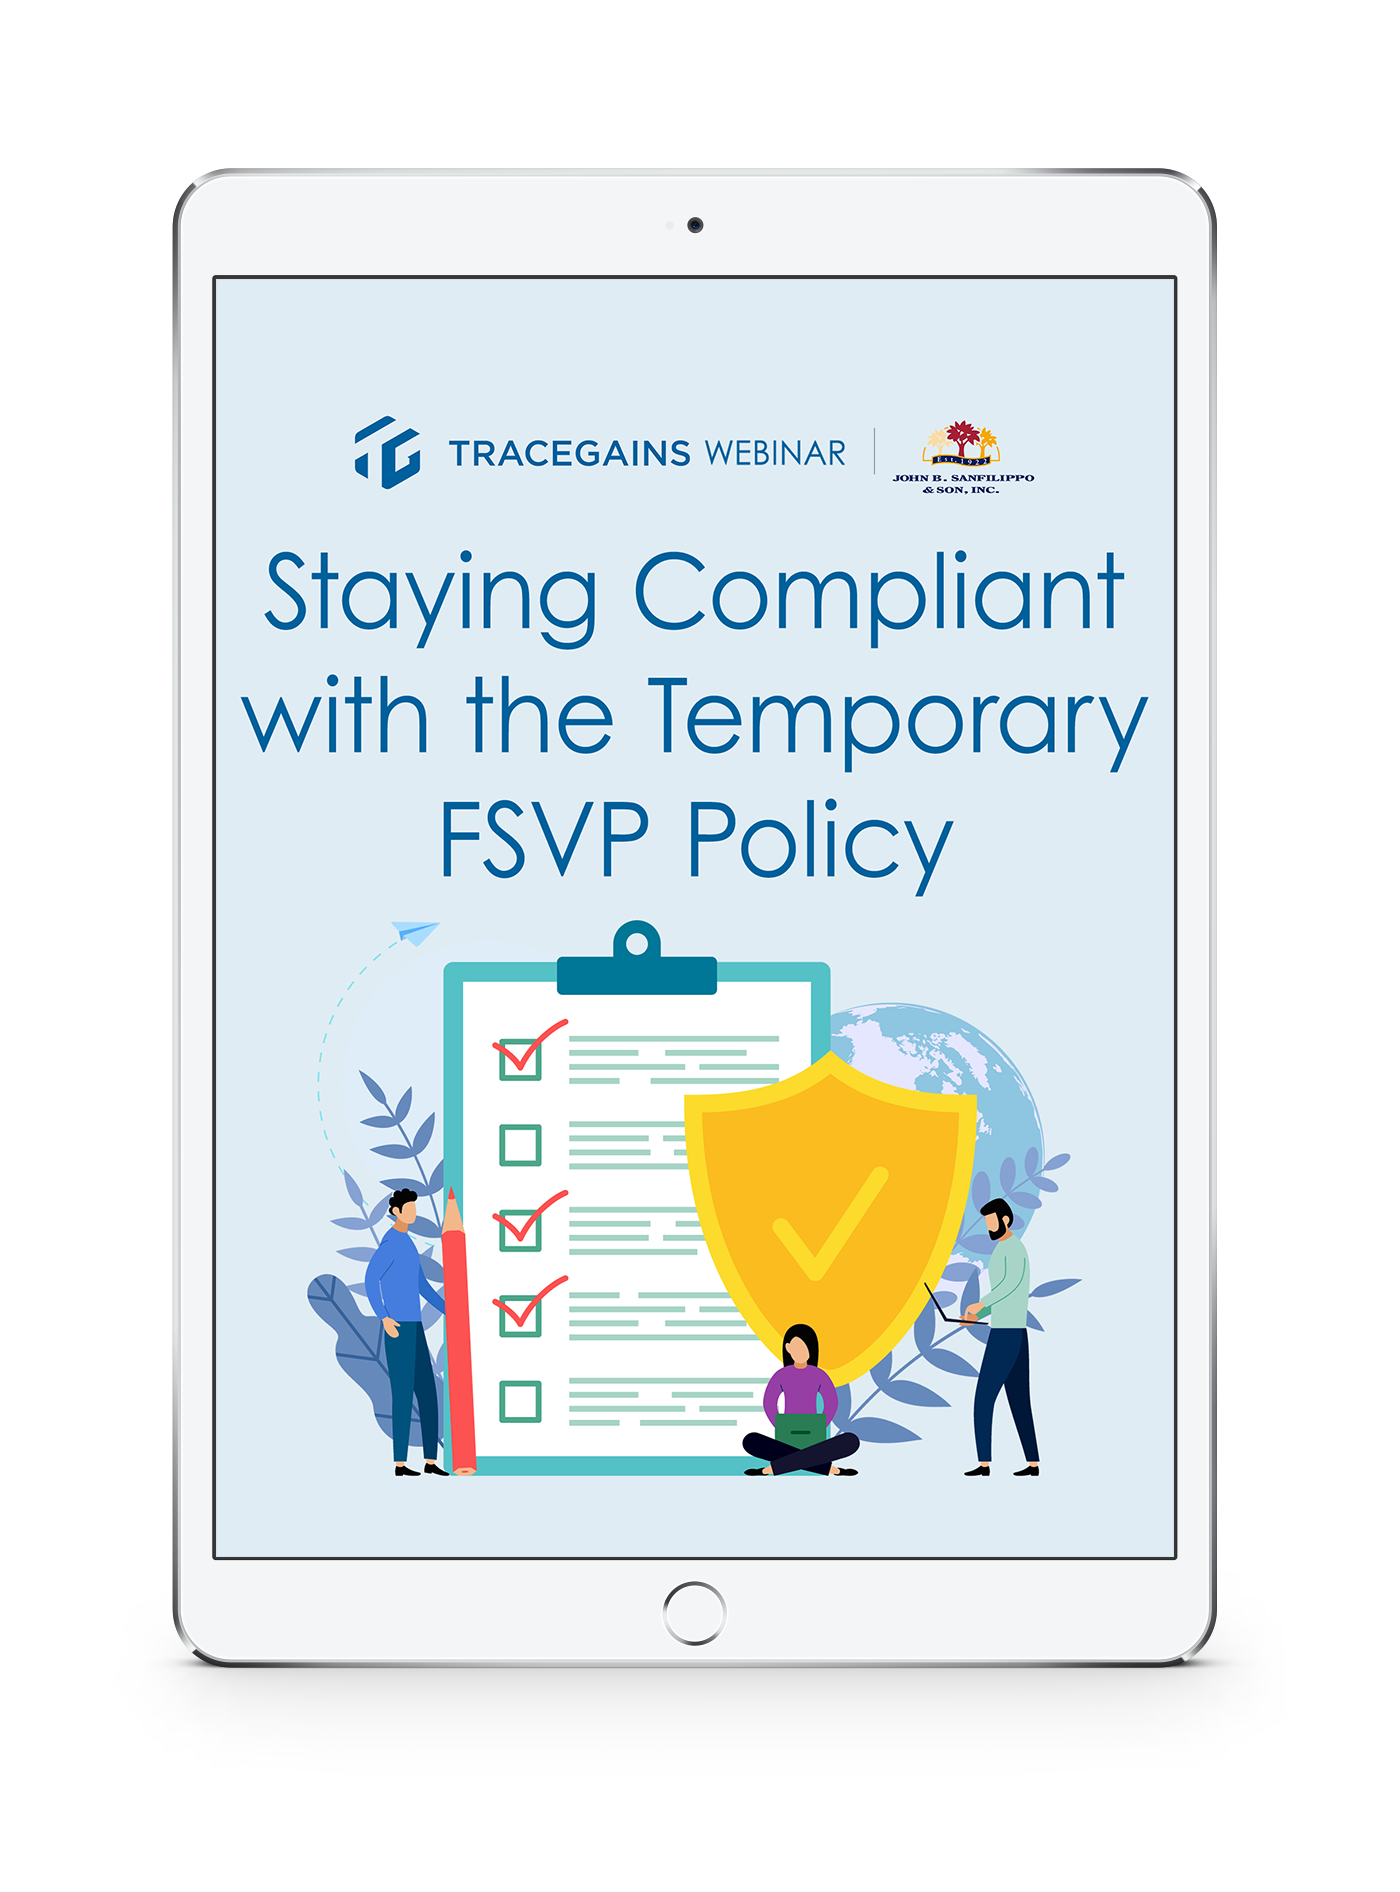 TraceGains Webinar: Staying Compliant with the Temporary FSVP Policy